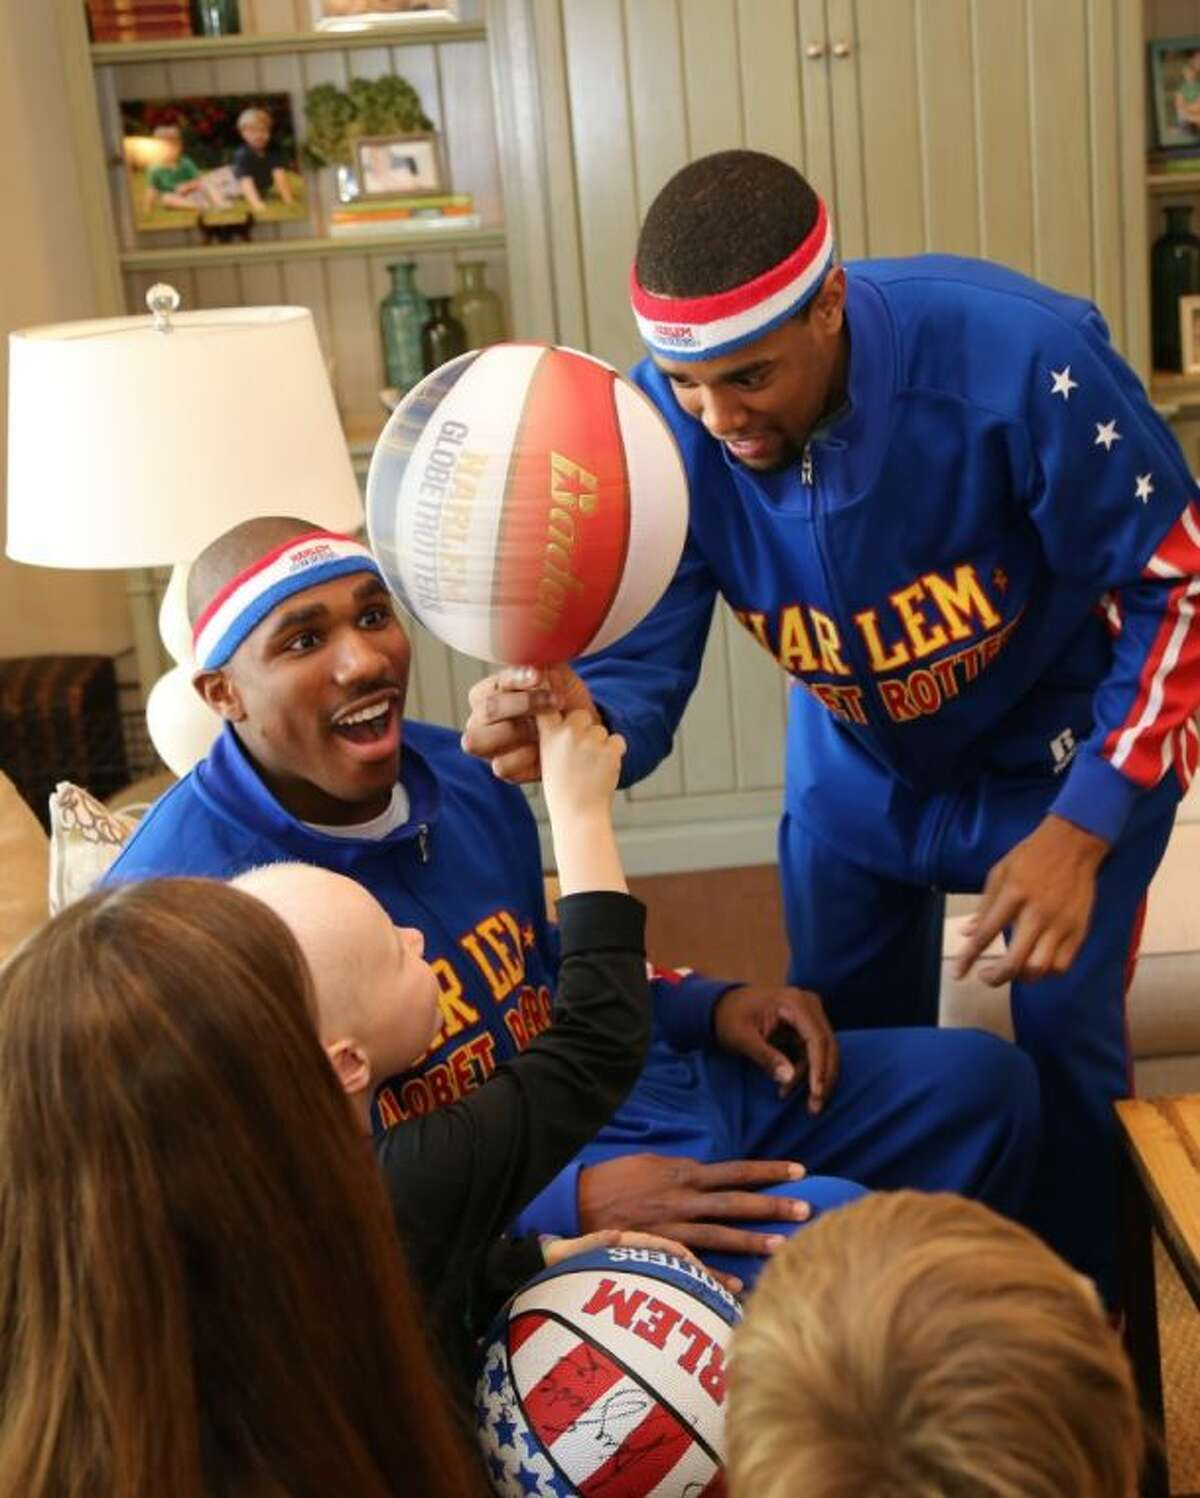 George Gring gets help spinning a basketball on his finger from Globetrotter Cheese Chisholm (right), to the delight of Thunder Law.